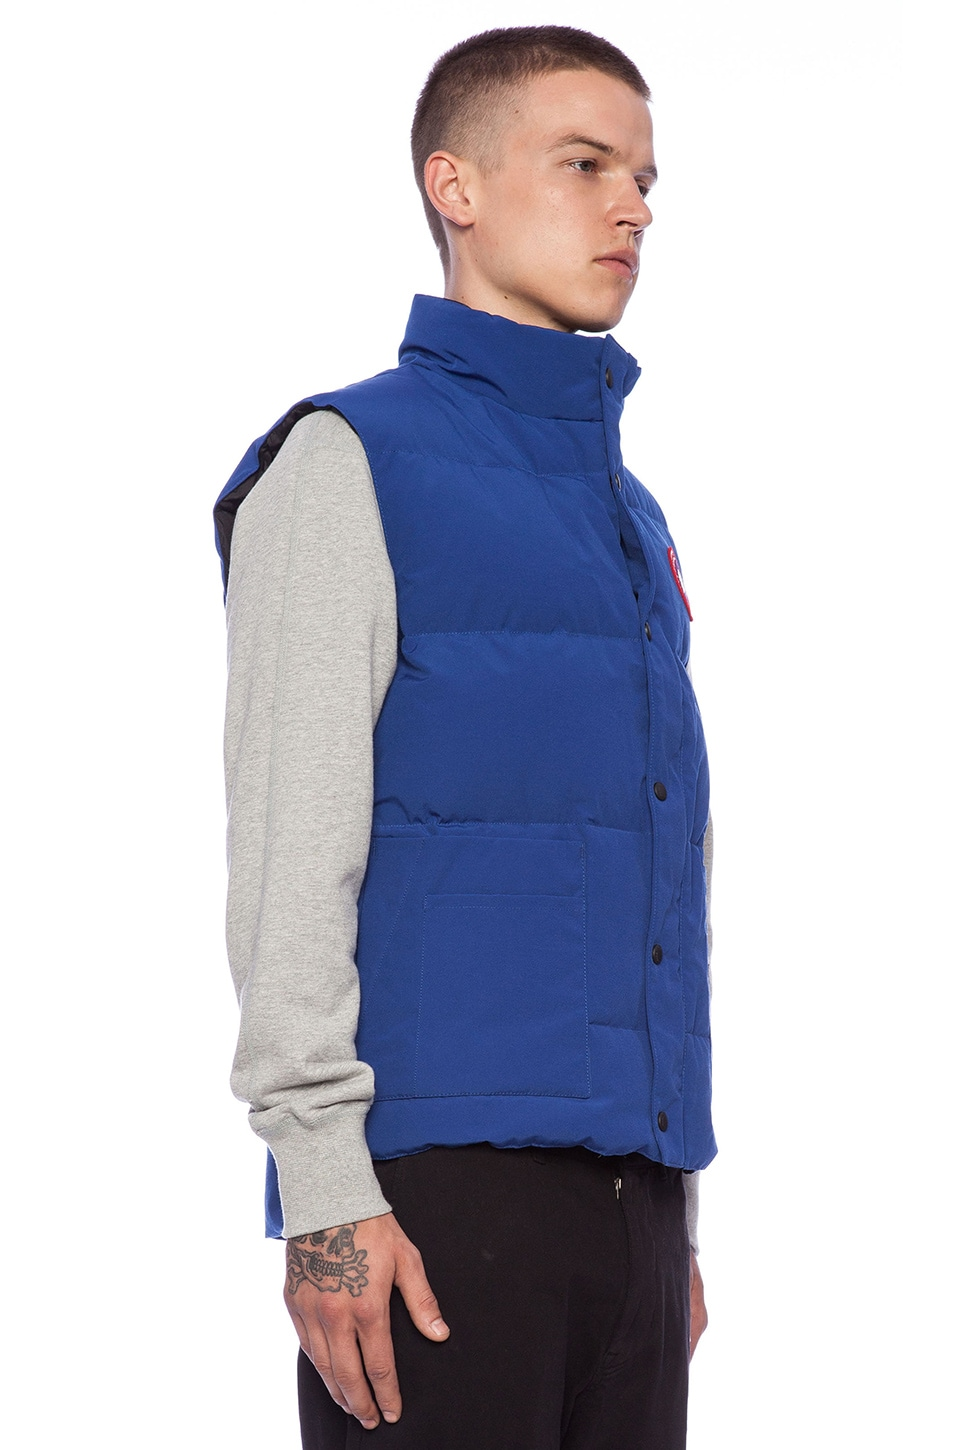 Canada Goose kids sale store - Canada Goose Freestyle Vest in Pacific Blue Discontinued | REVOLVE